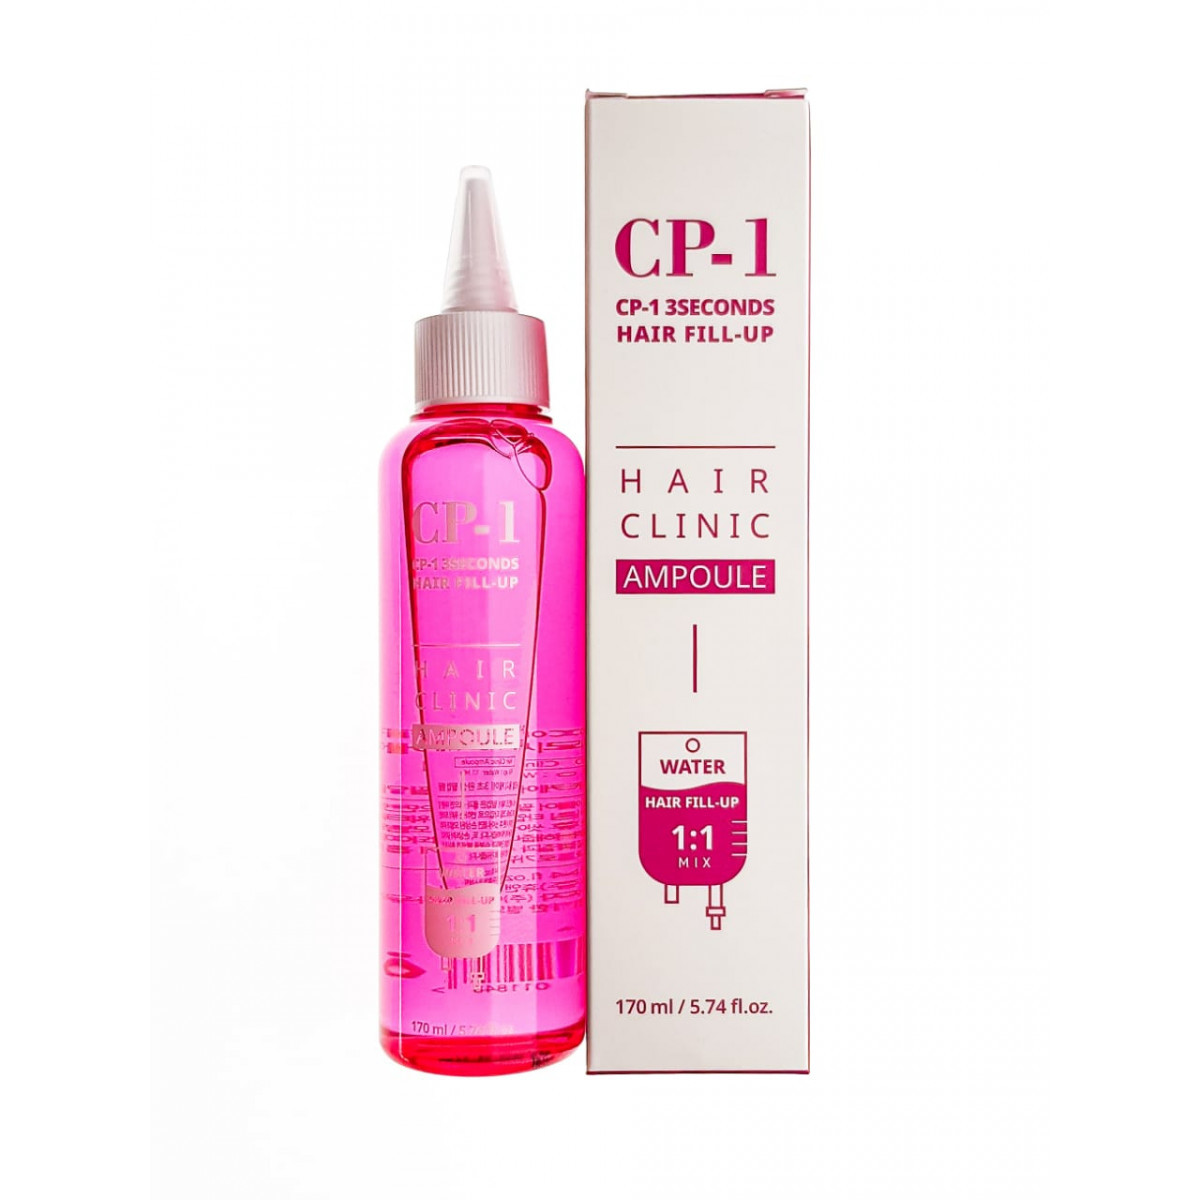 Филлеры для волос CP-1 3 Seconds Hair Ringer Hair Fill-up Ampoule